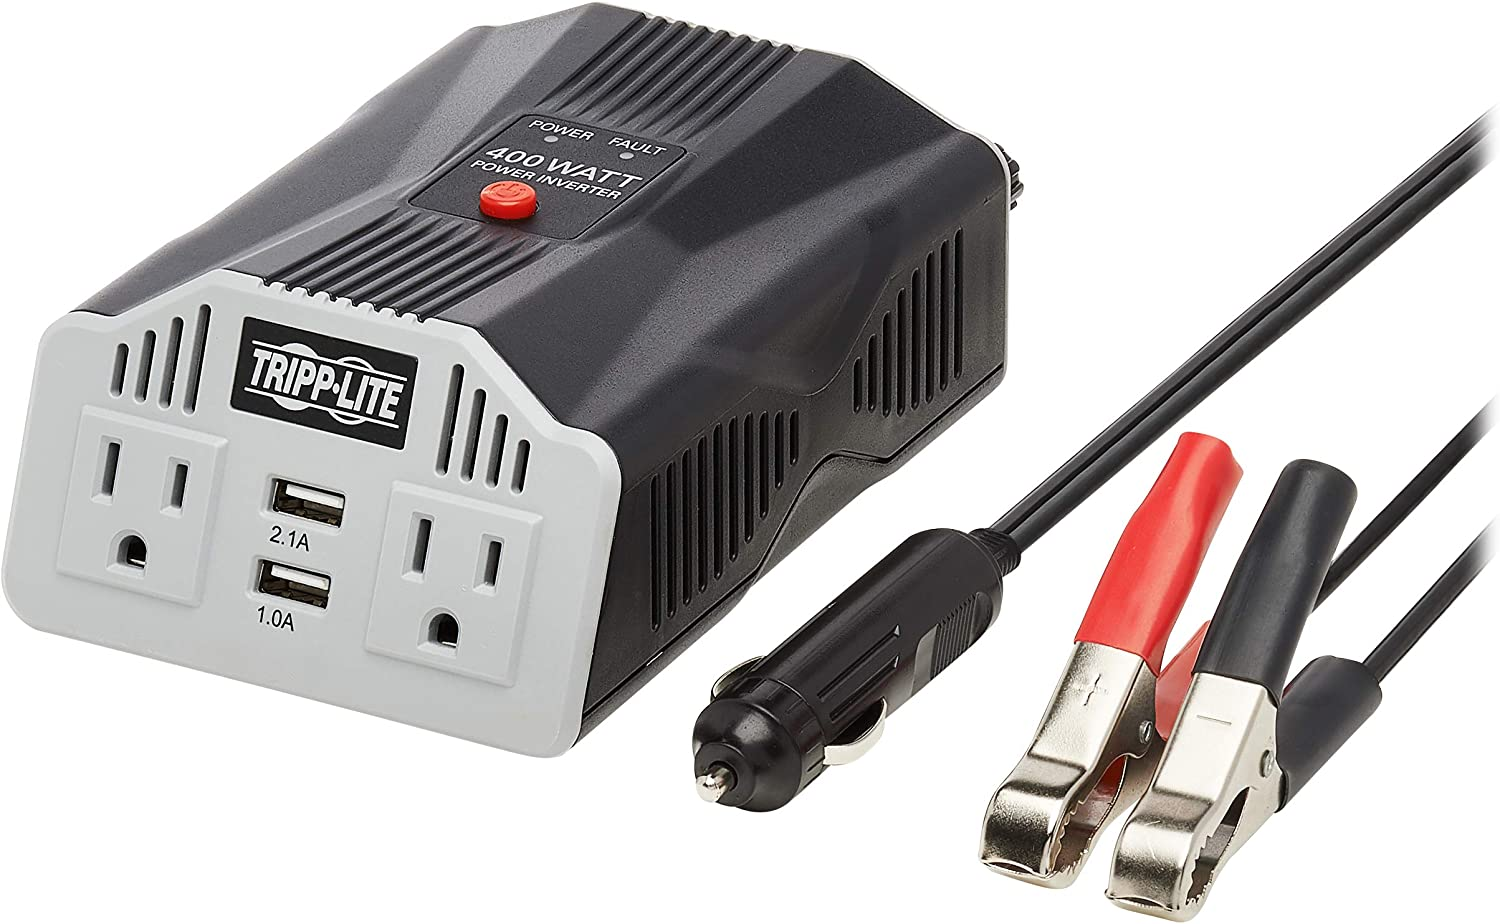 Tripp Lite 200W Car Power Inverter with 2 Outlets & 2 USB Charging Ports, Cup Holder Design, Auto Inverter (PV200CUSB),Gray: Home Audio & Theater